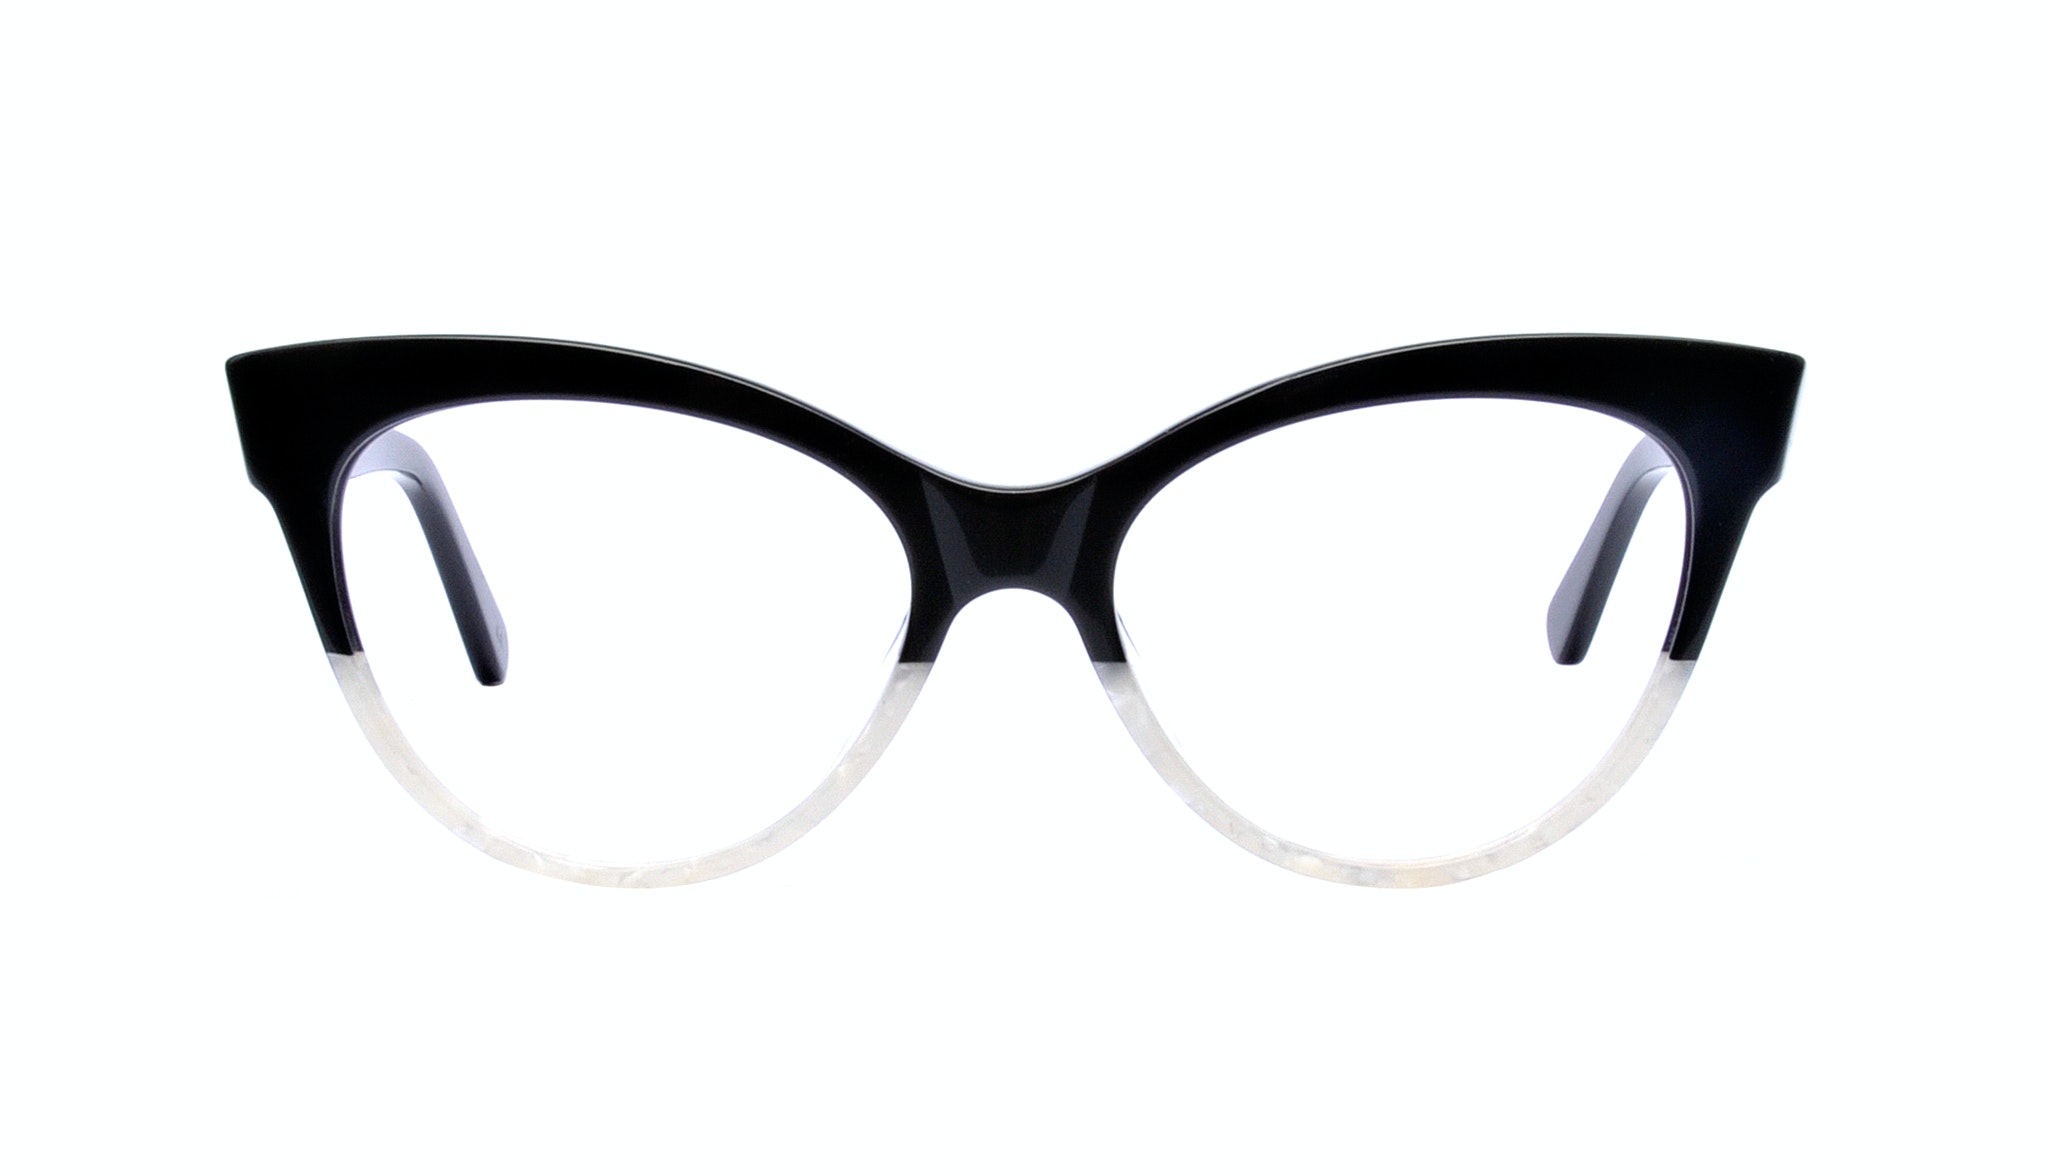 Affordable Fashion Glasses Cat Eye Square Eyeglasses Women SkunkBoy Panda Pearl Front